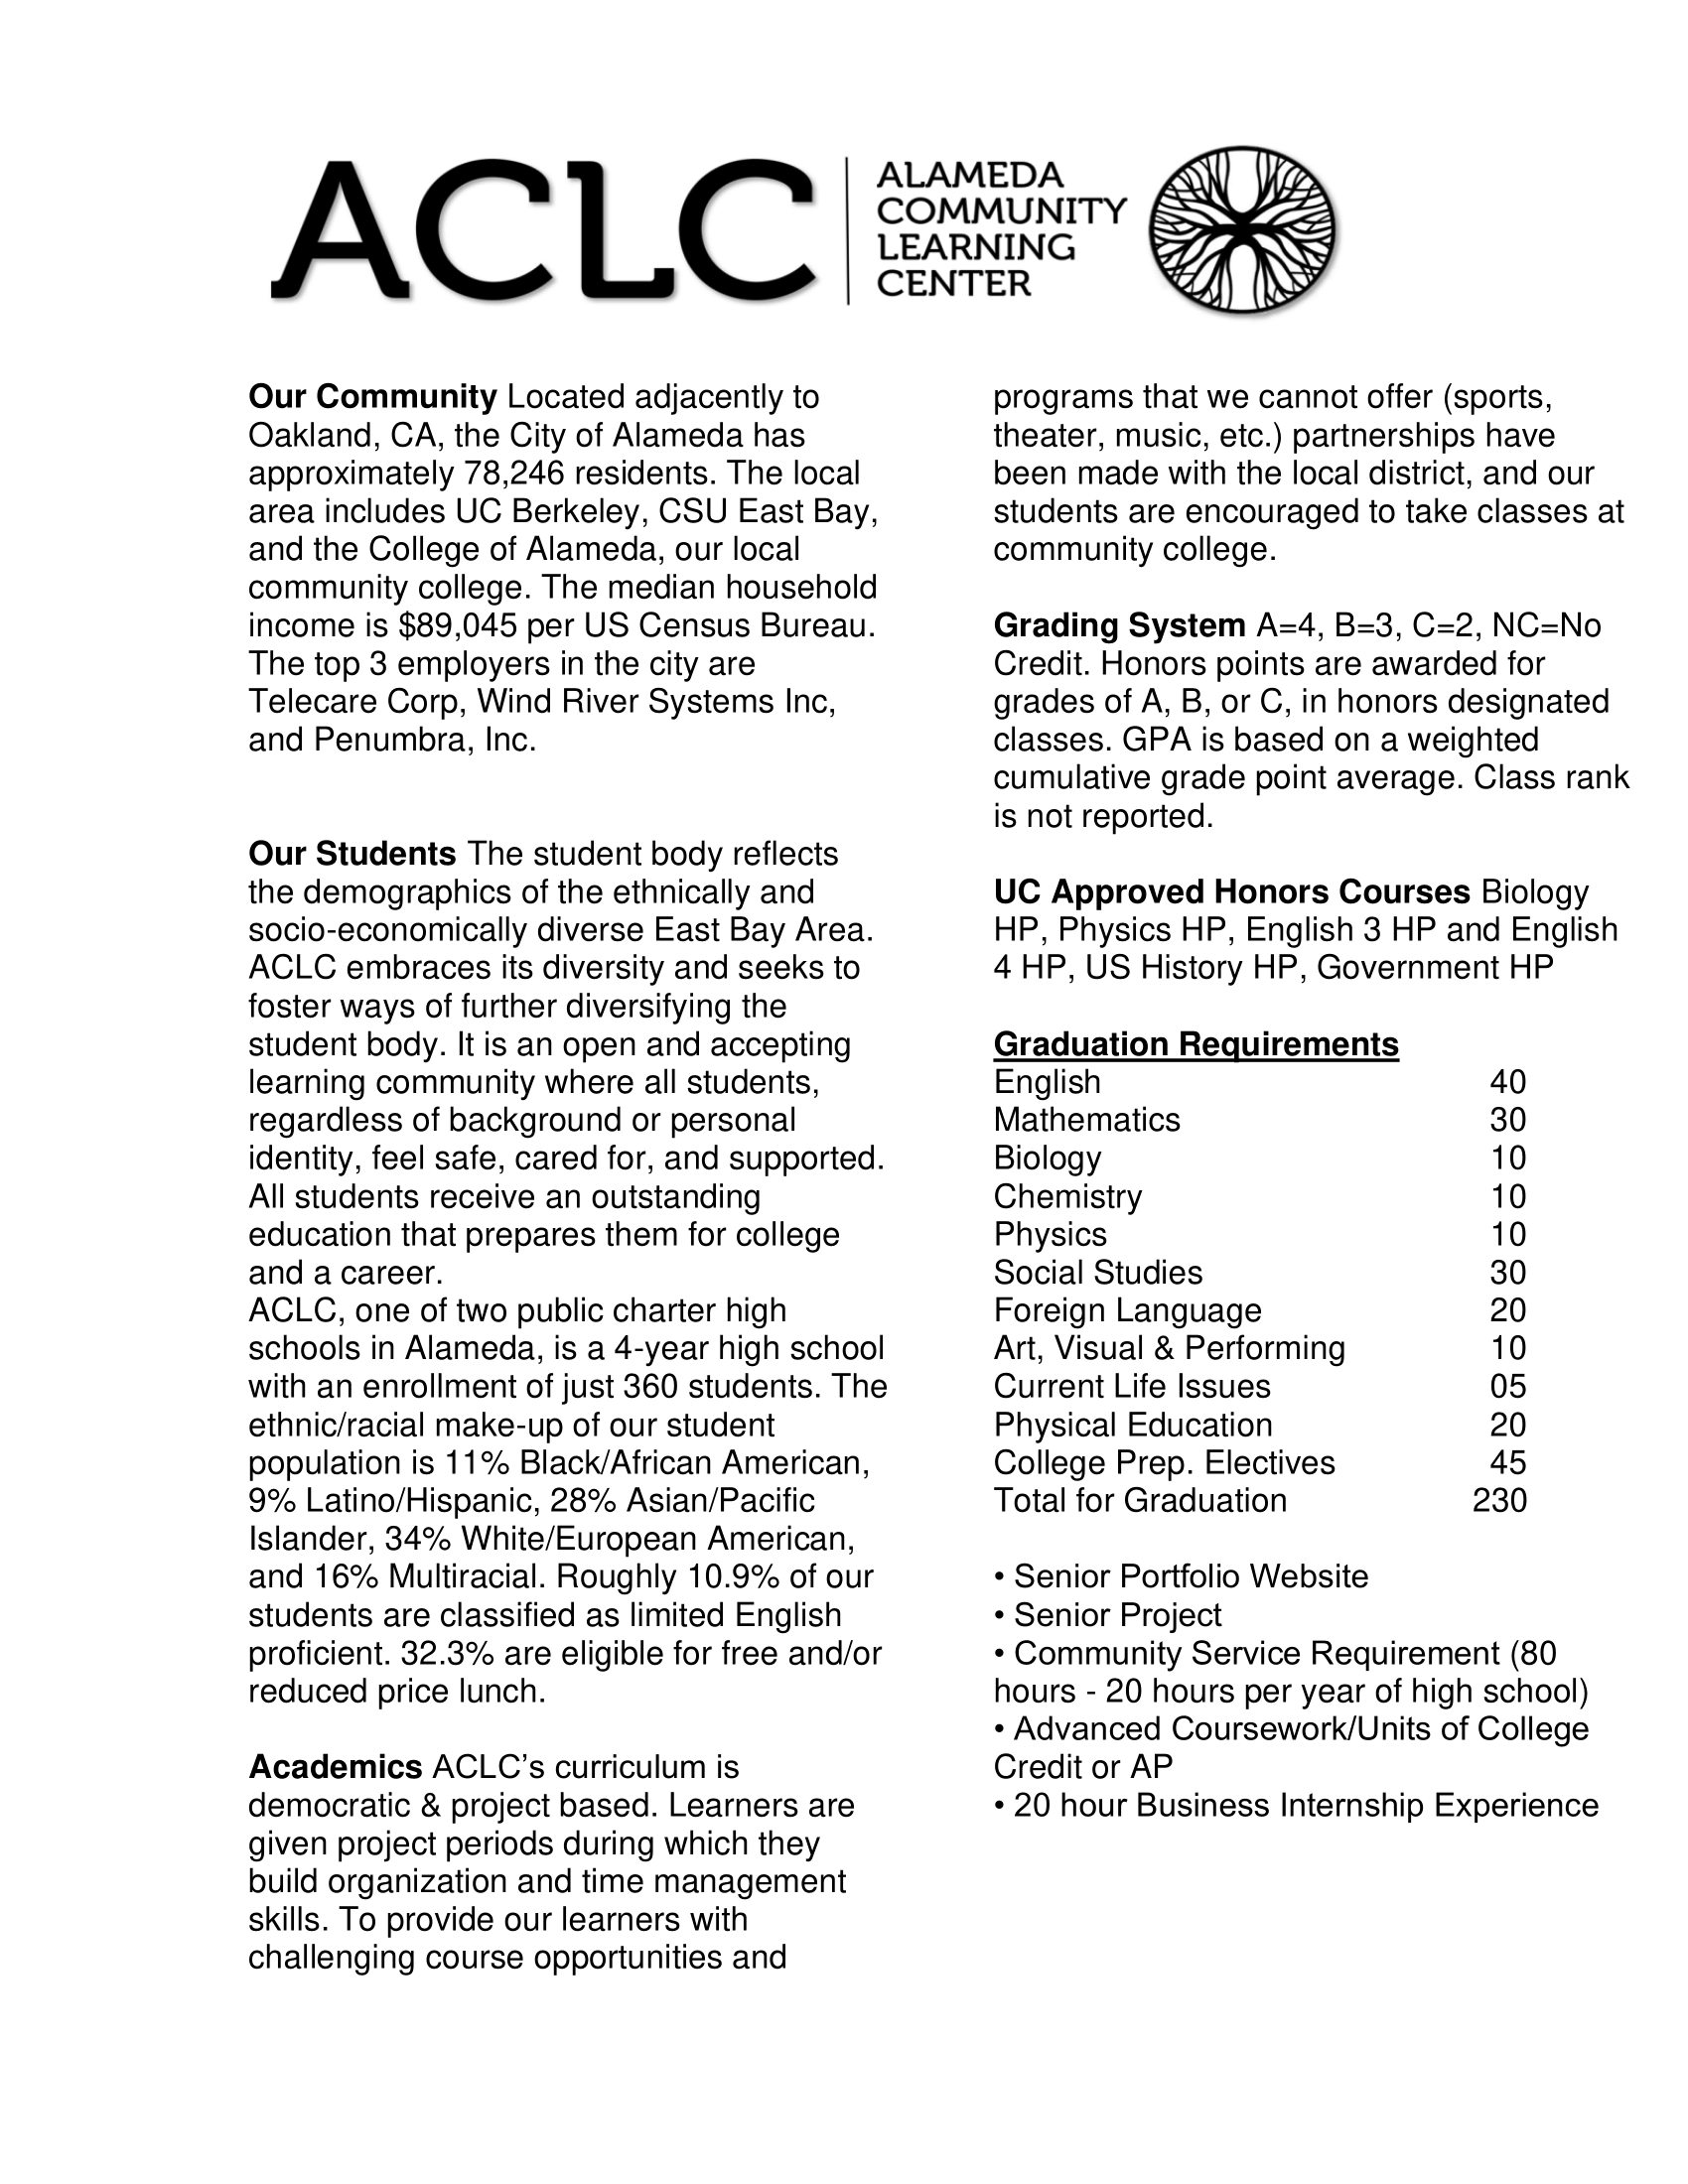 Image of ACLC School Profile p1